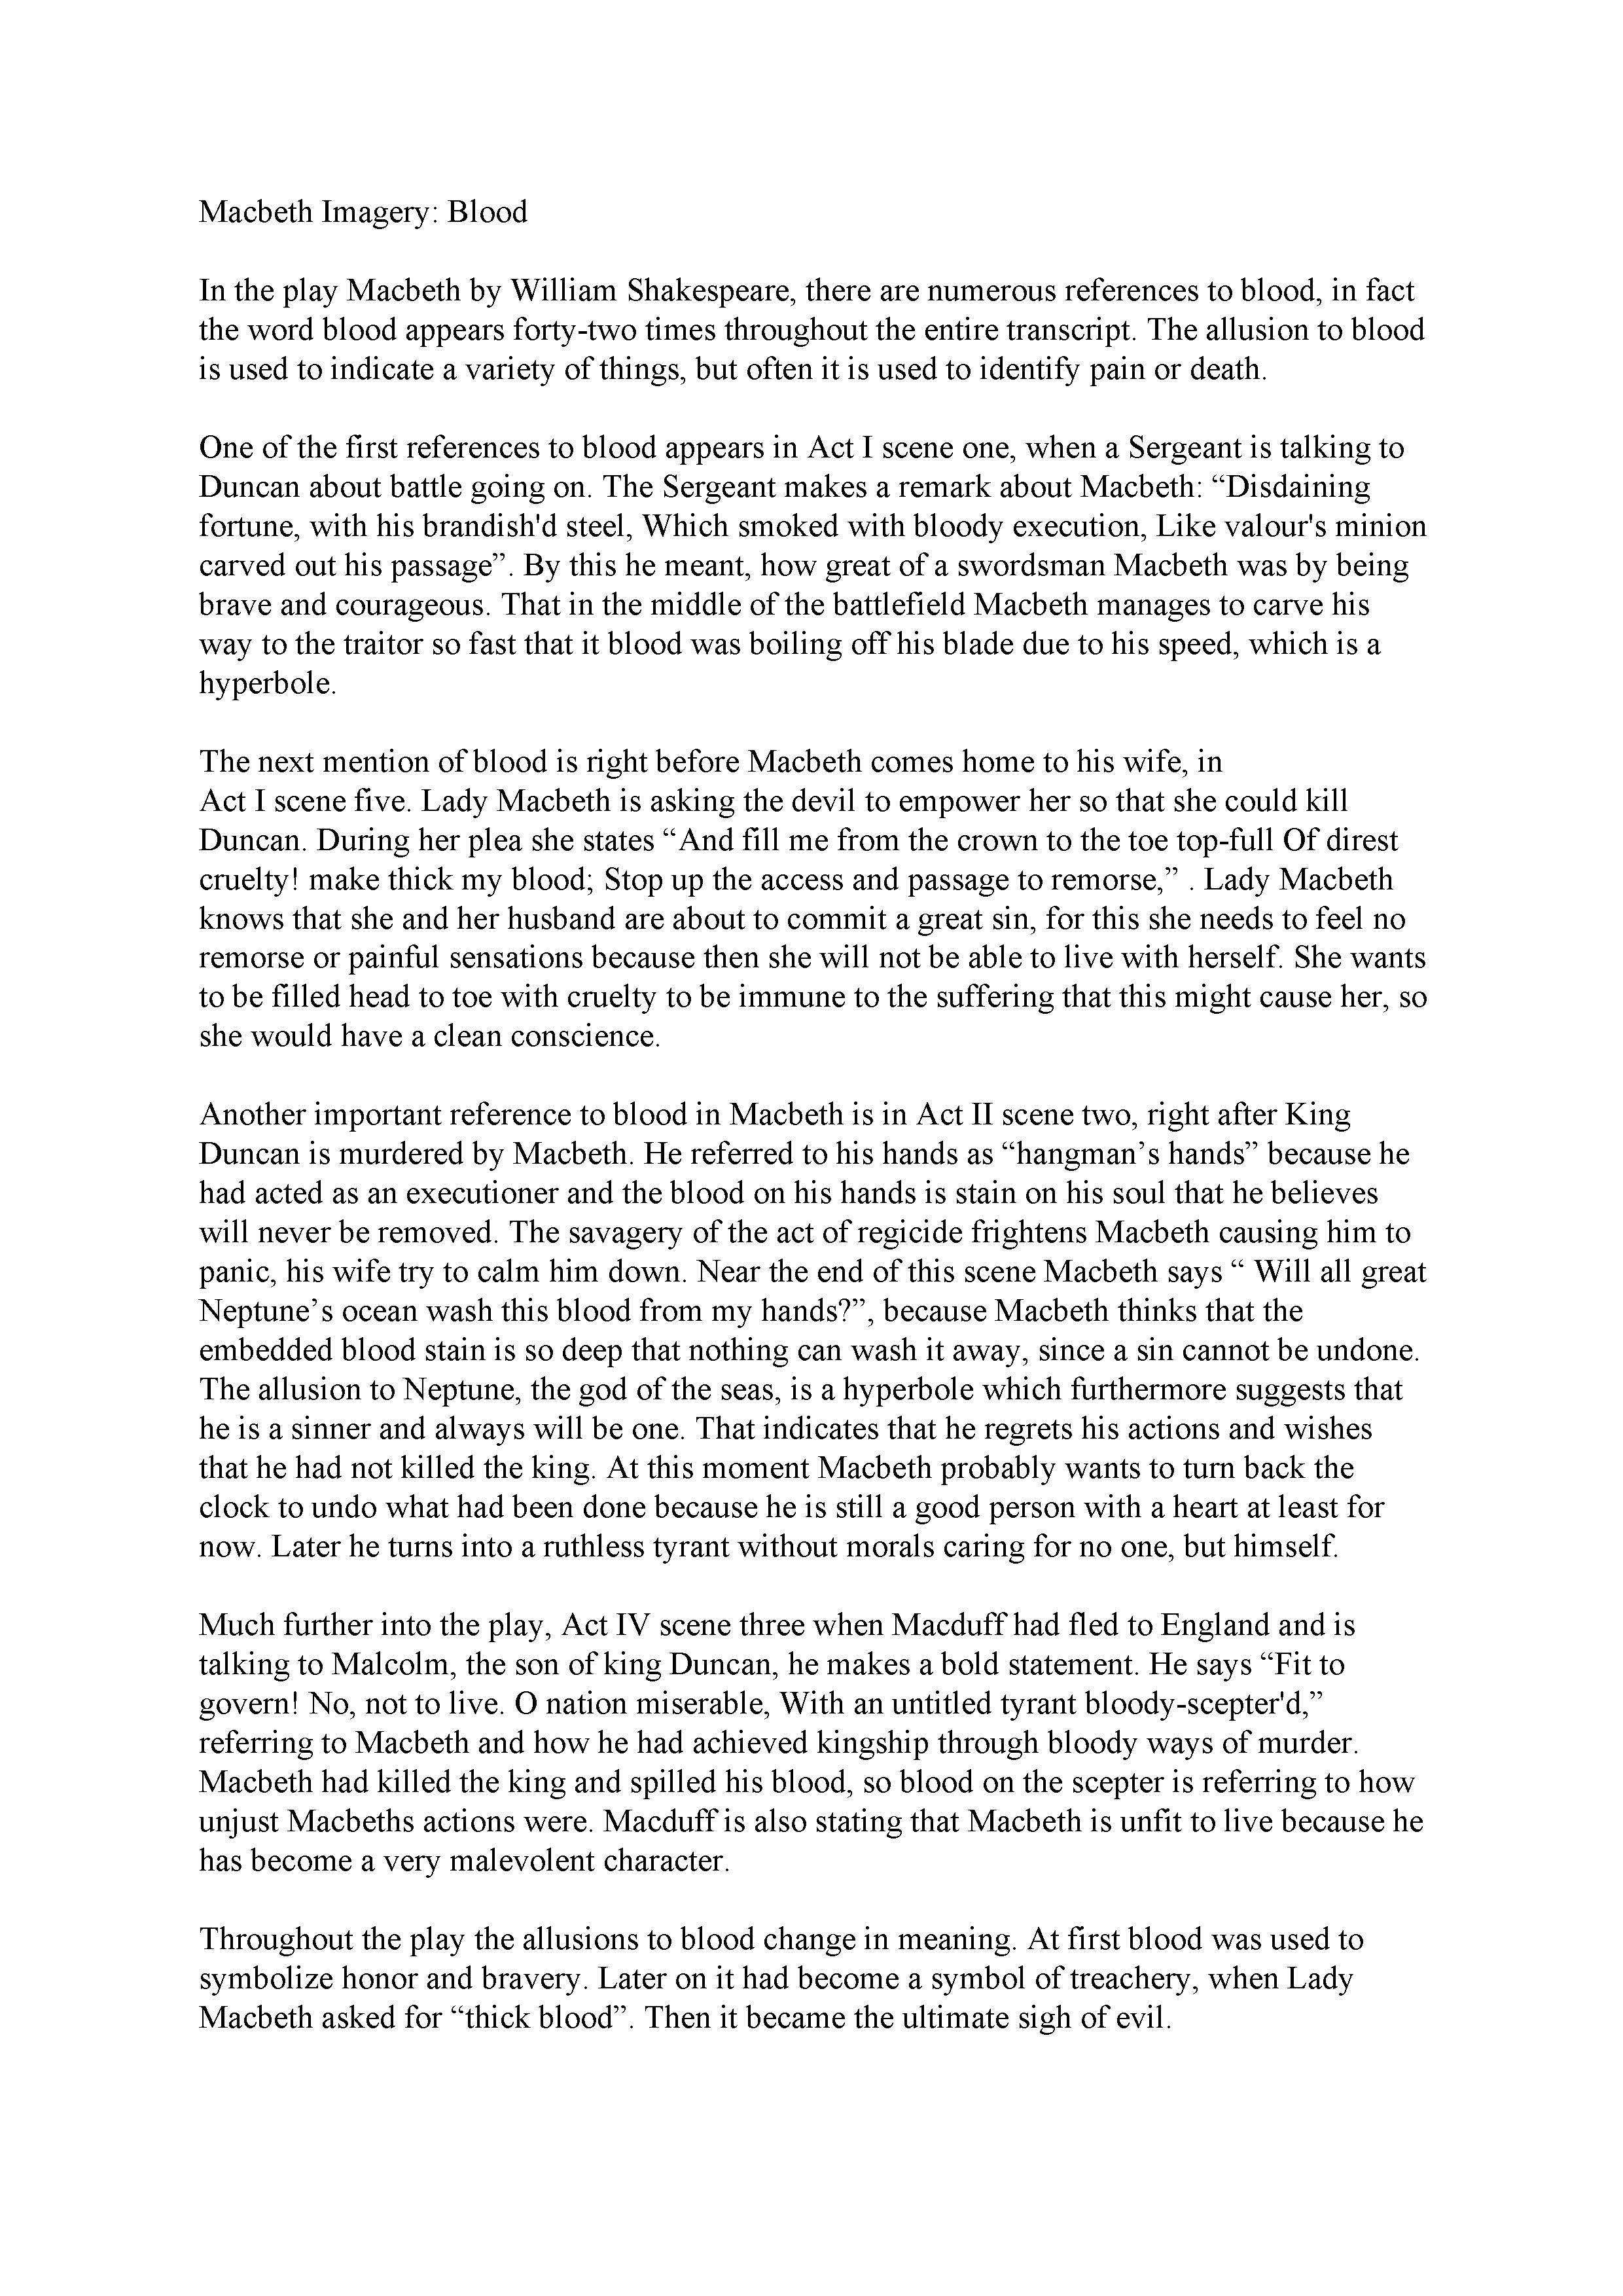 014 Help Me Write Reflective Essay On Shakespeare Culture Shock Fearsome Prompt Story Titles Full